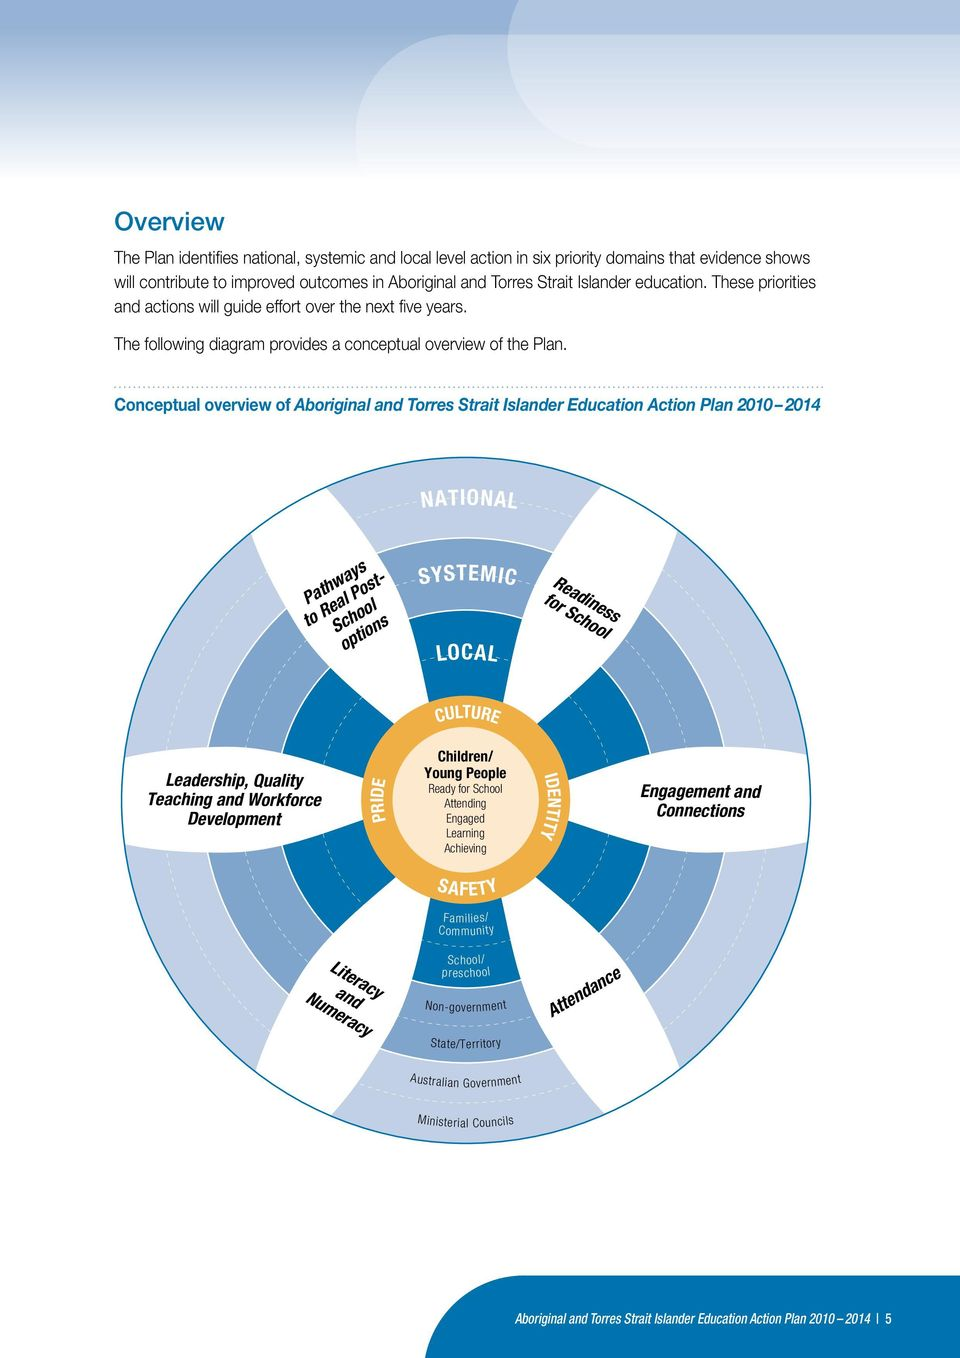 Conceptual overview of Aboriginal and Torres Strait Islander Education Action Plan 2010 2014 NATIONAL Pathways to Real Post- School options SYSTEMIC LOCAL Readiness for School CULTURE Leadership,